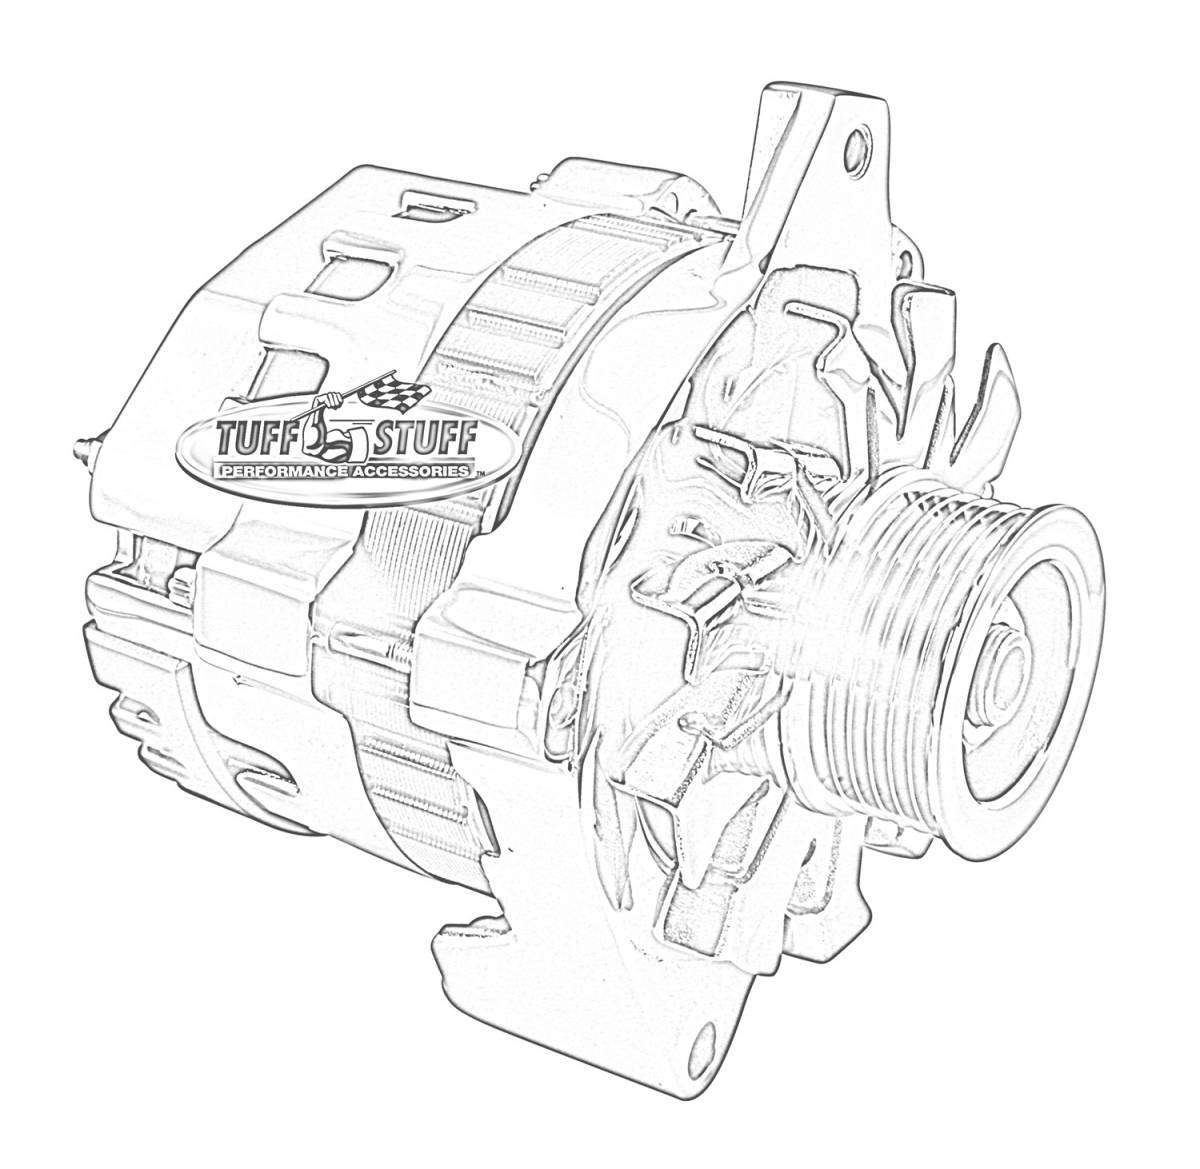 Mini Starter Wiring Hook Up Trusted Diagrams Chevy Alternator 7937b6g Tuff Stuff Performance Accessories Diagram